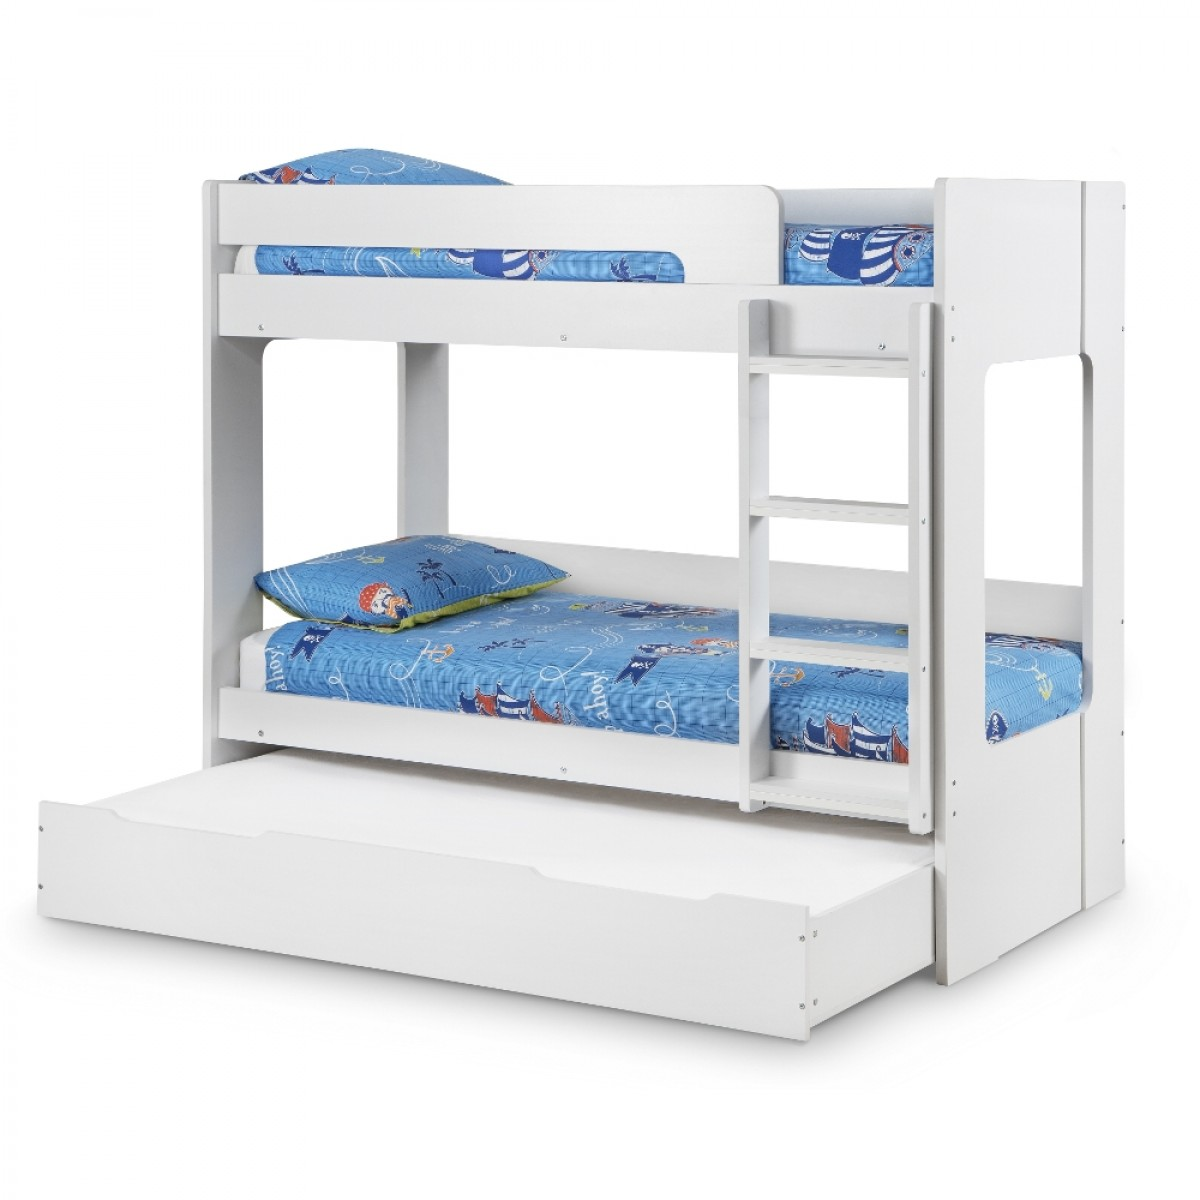 Ellie White Wooden Bunk Bed And Trundle Guest Underbed Storage Drawer